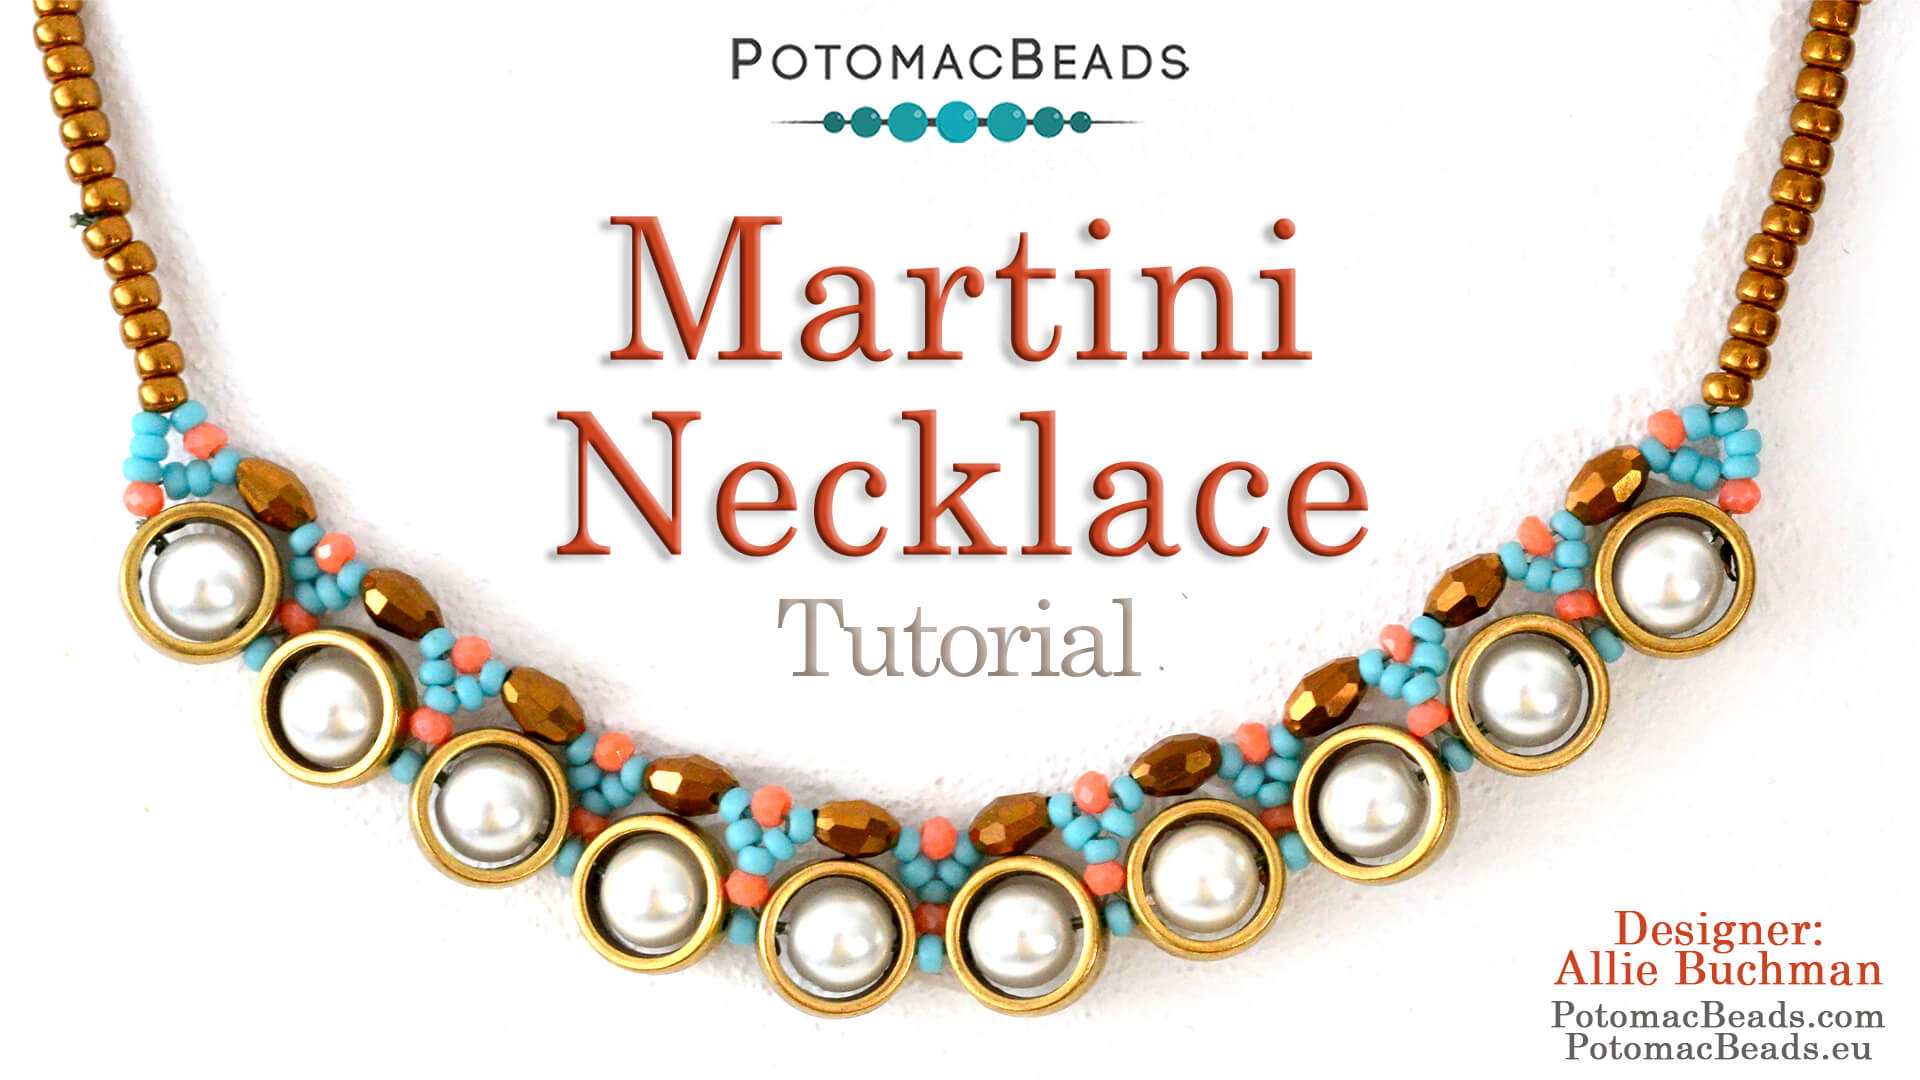 How to Bead / Videos Sorted by Beads / Pearl Videos (Czech & Freshwater) / Martini Necklace Tutorial